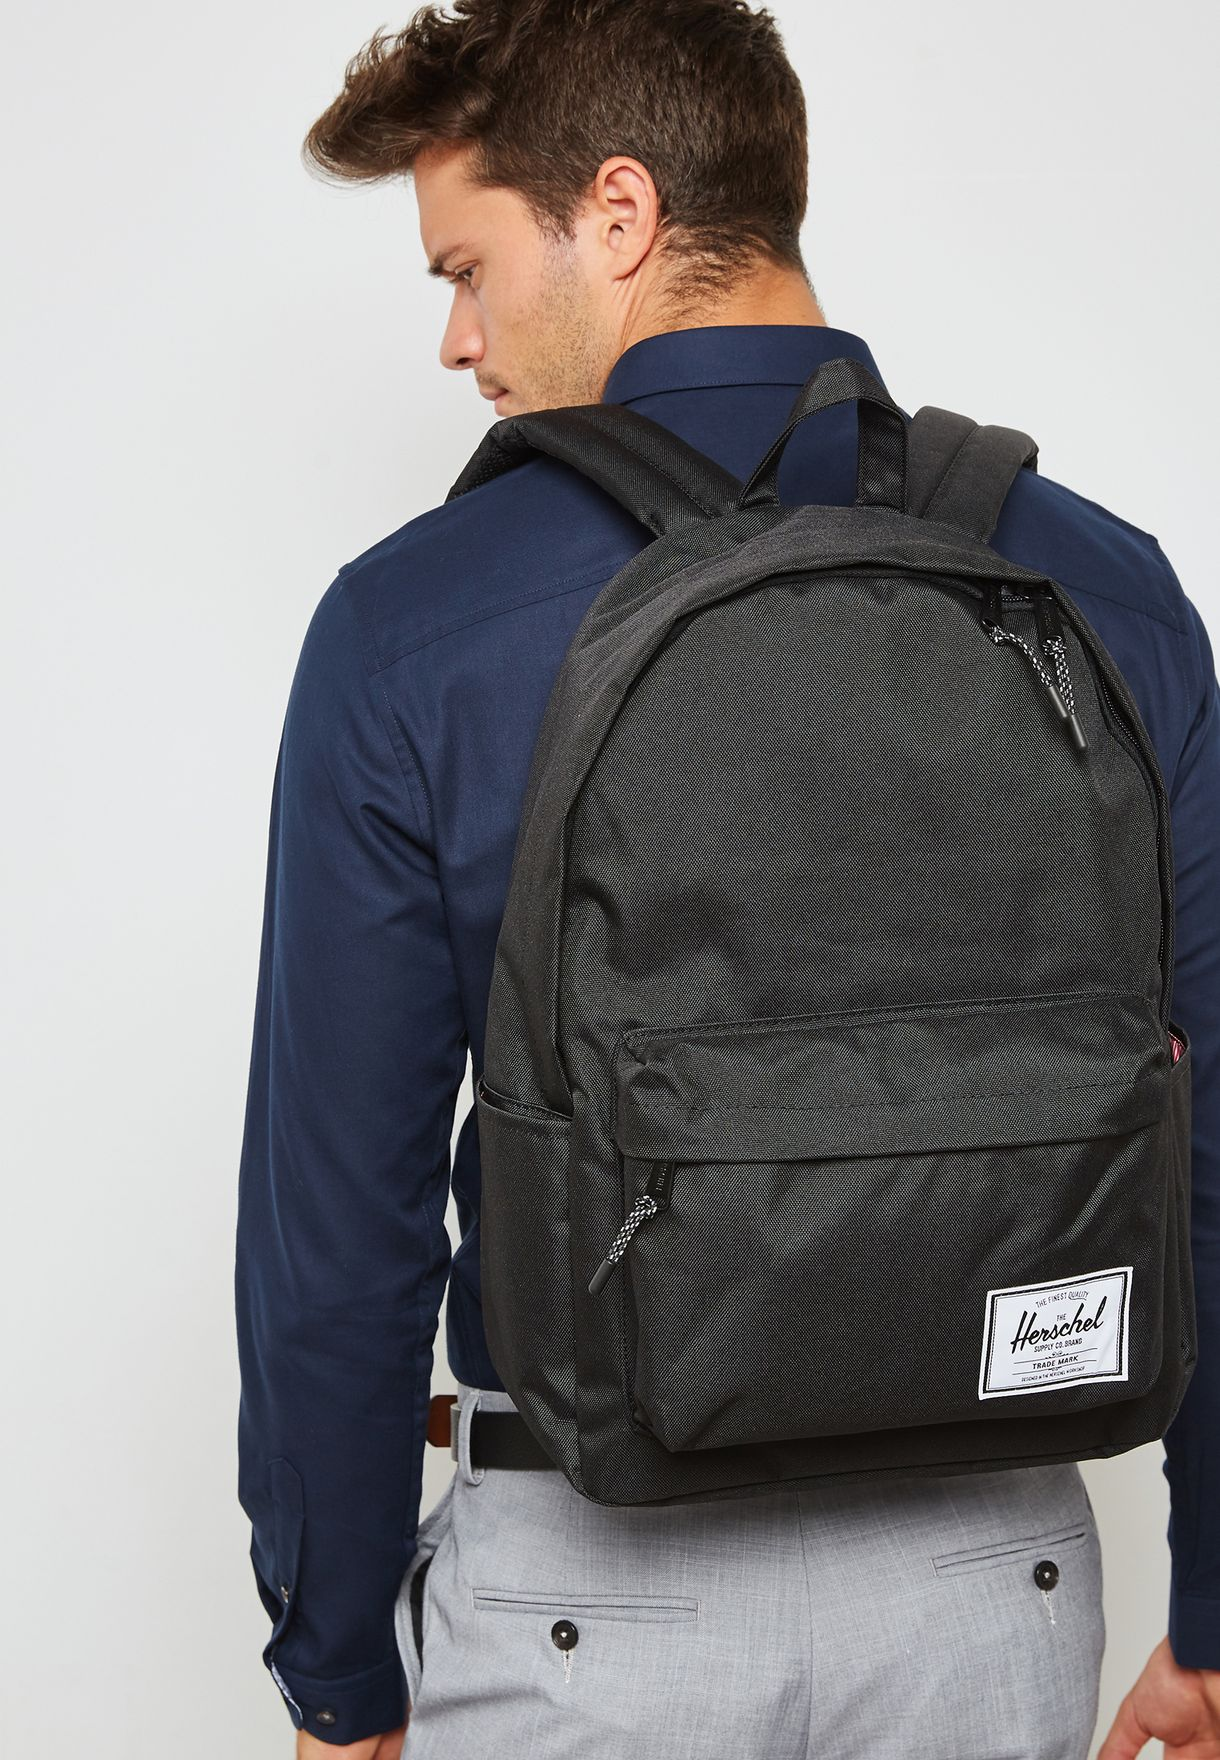 978c77be251 Classic XL Backpack 30L